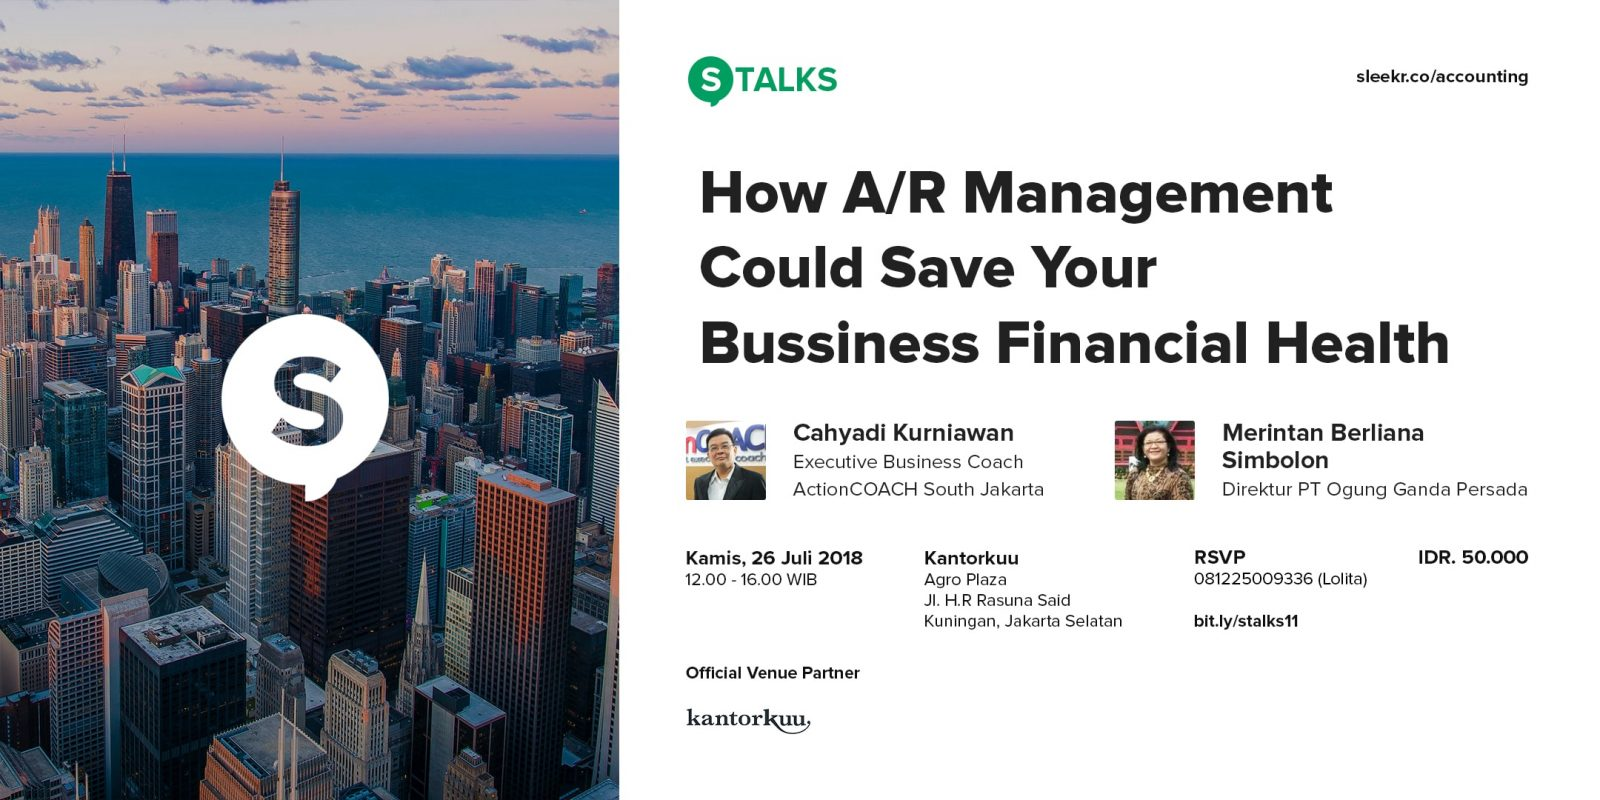 S-TALKS Accounting: How A/R Management Could Save Your Business Financial Health